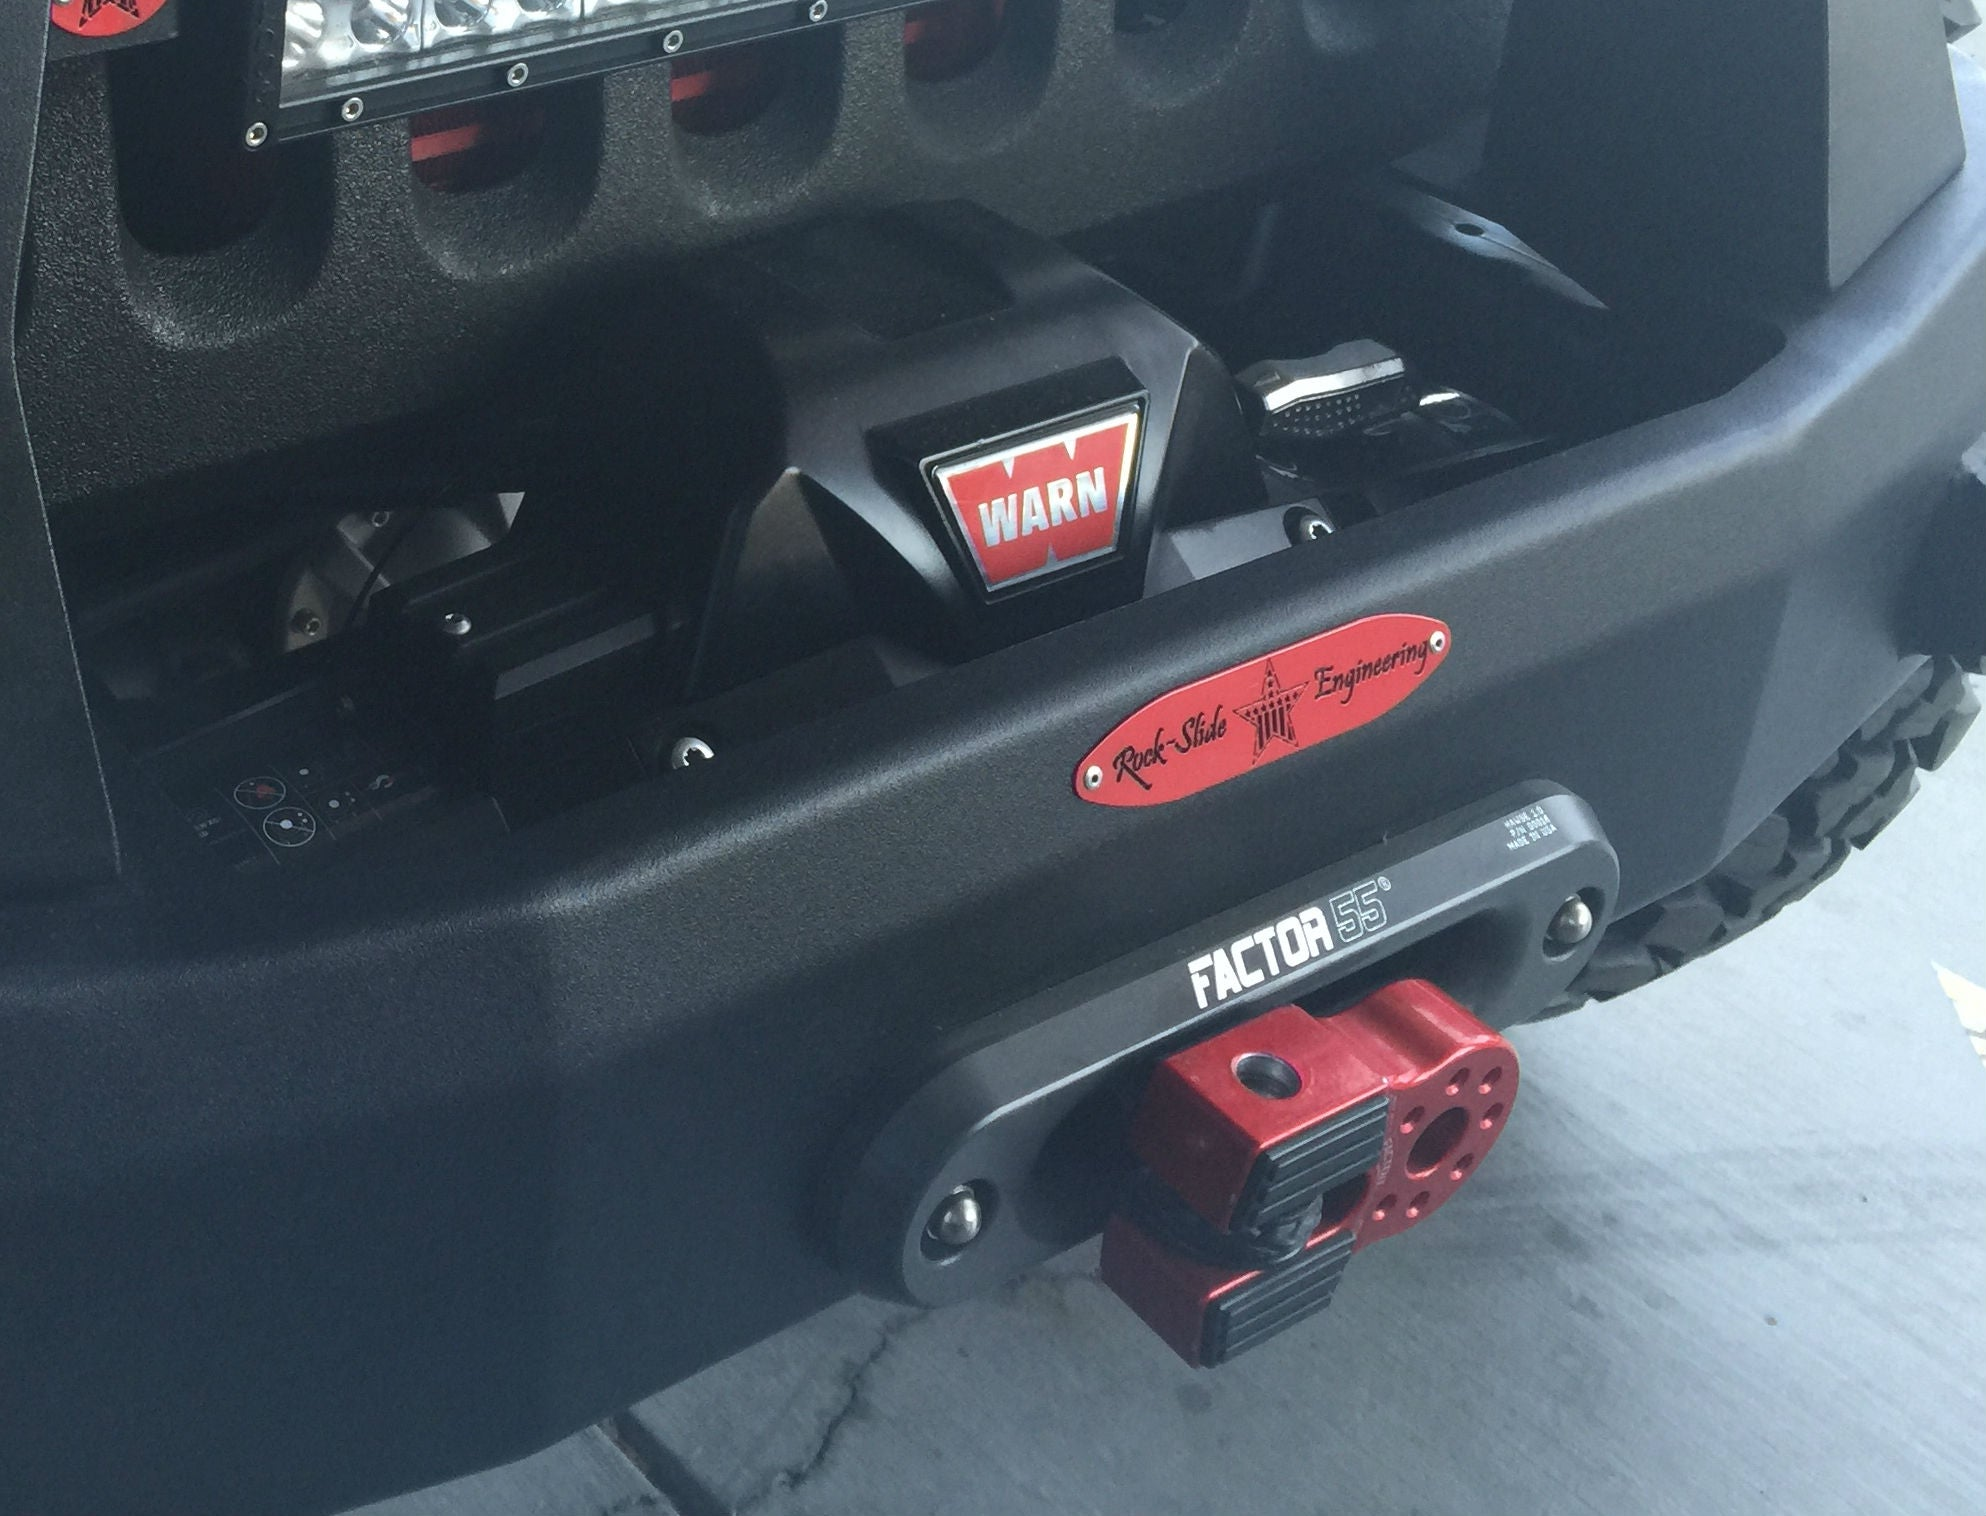 Jeep  Wrangler Warn Winch Installation Near Me in Chicago